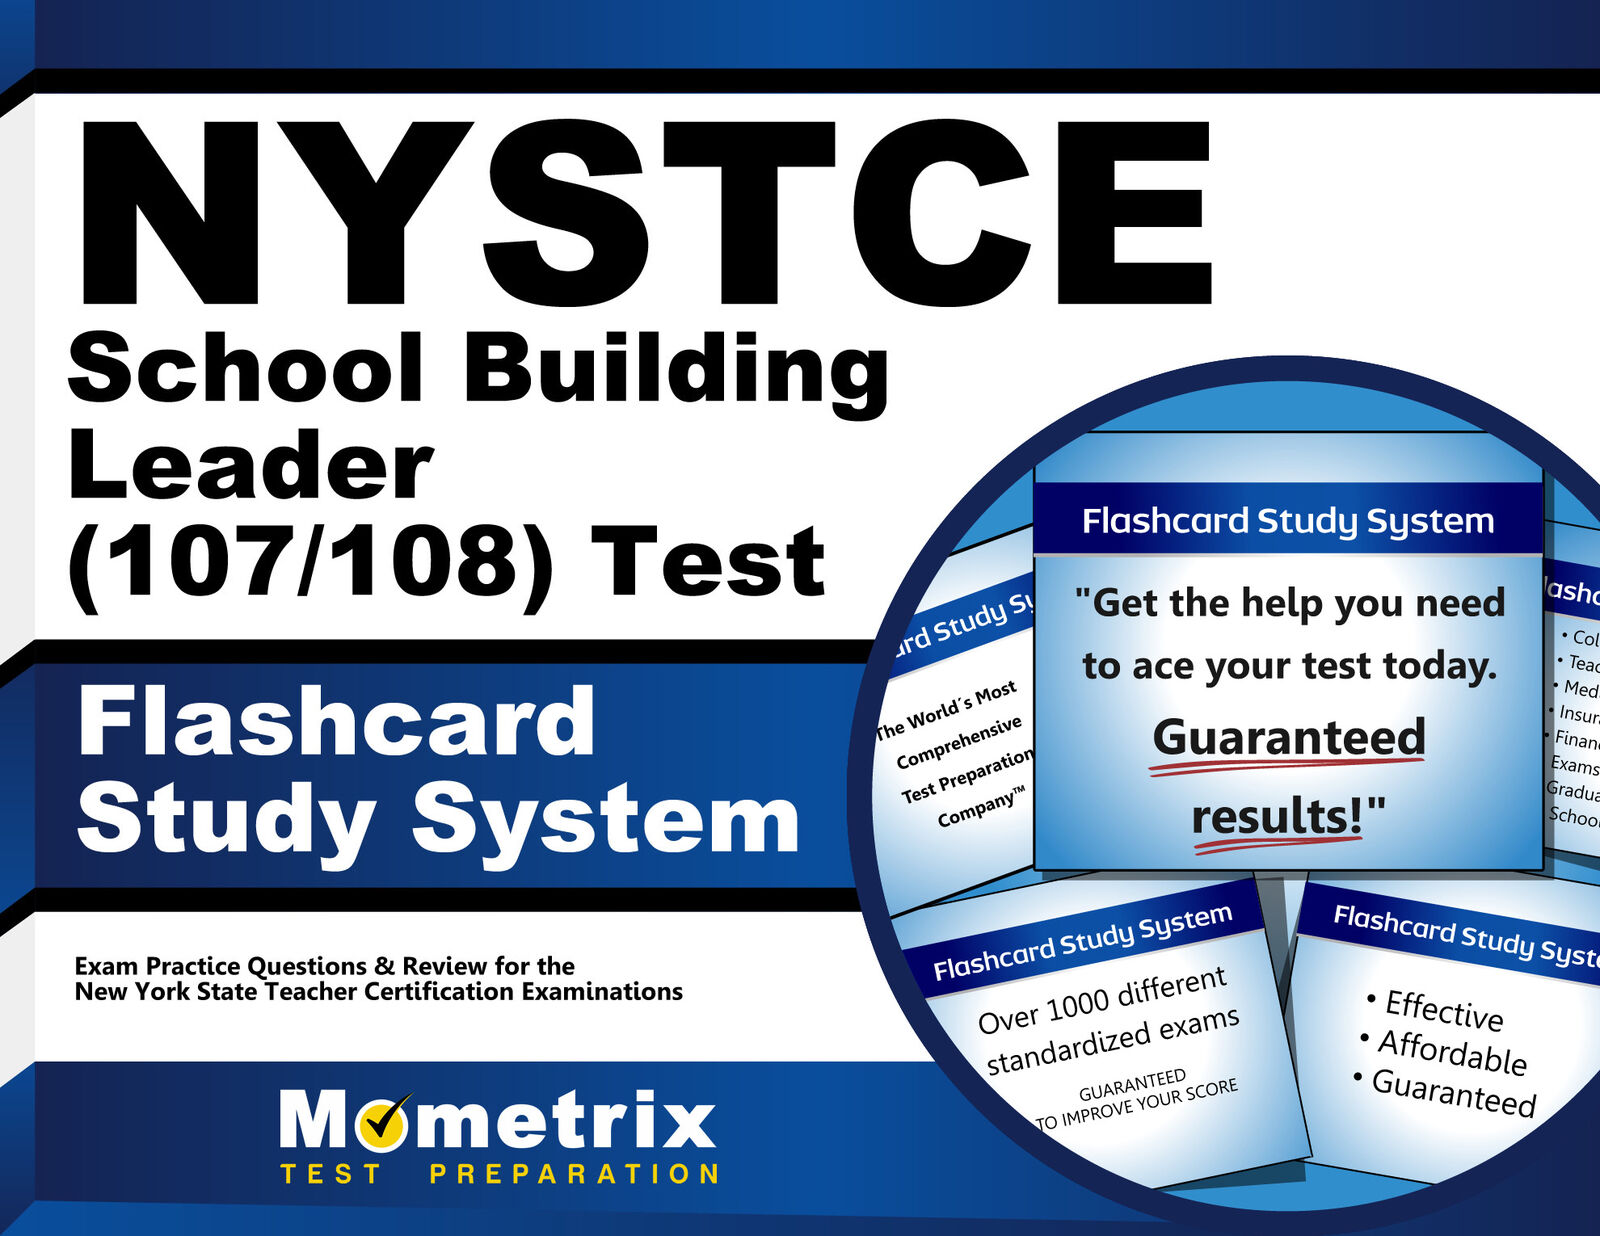 Nystce School Building Leader 100101 Test Flashcard Study System